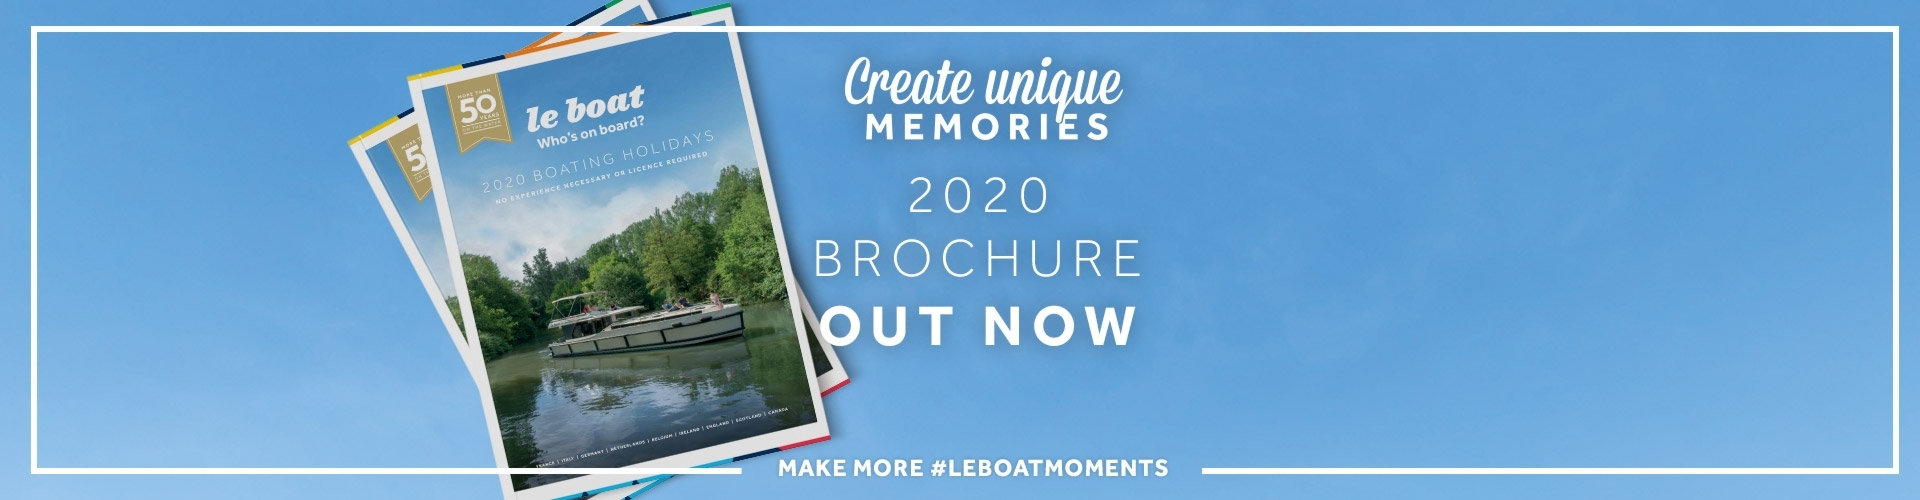 Download our new 2020 brochure